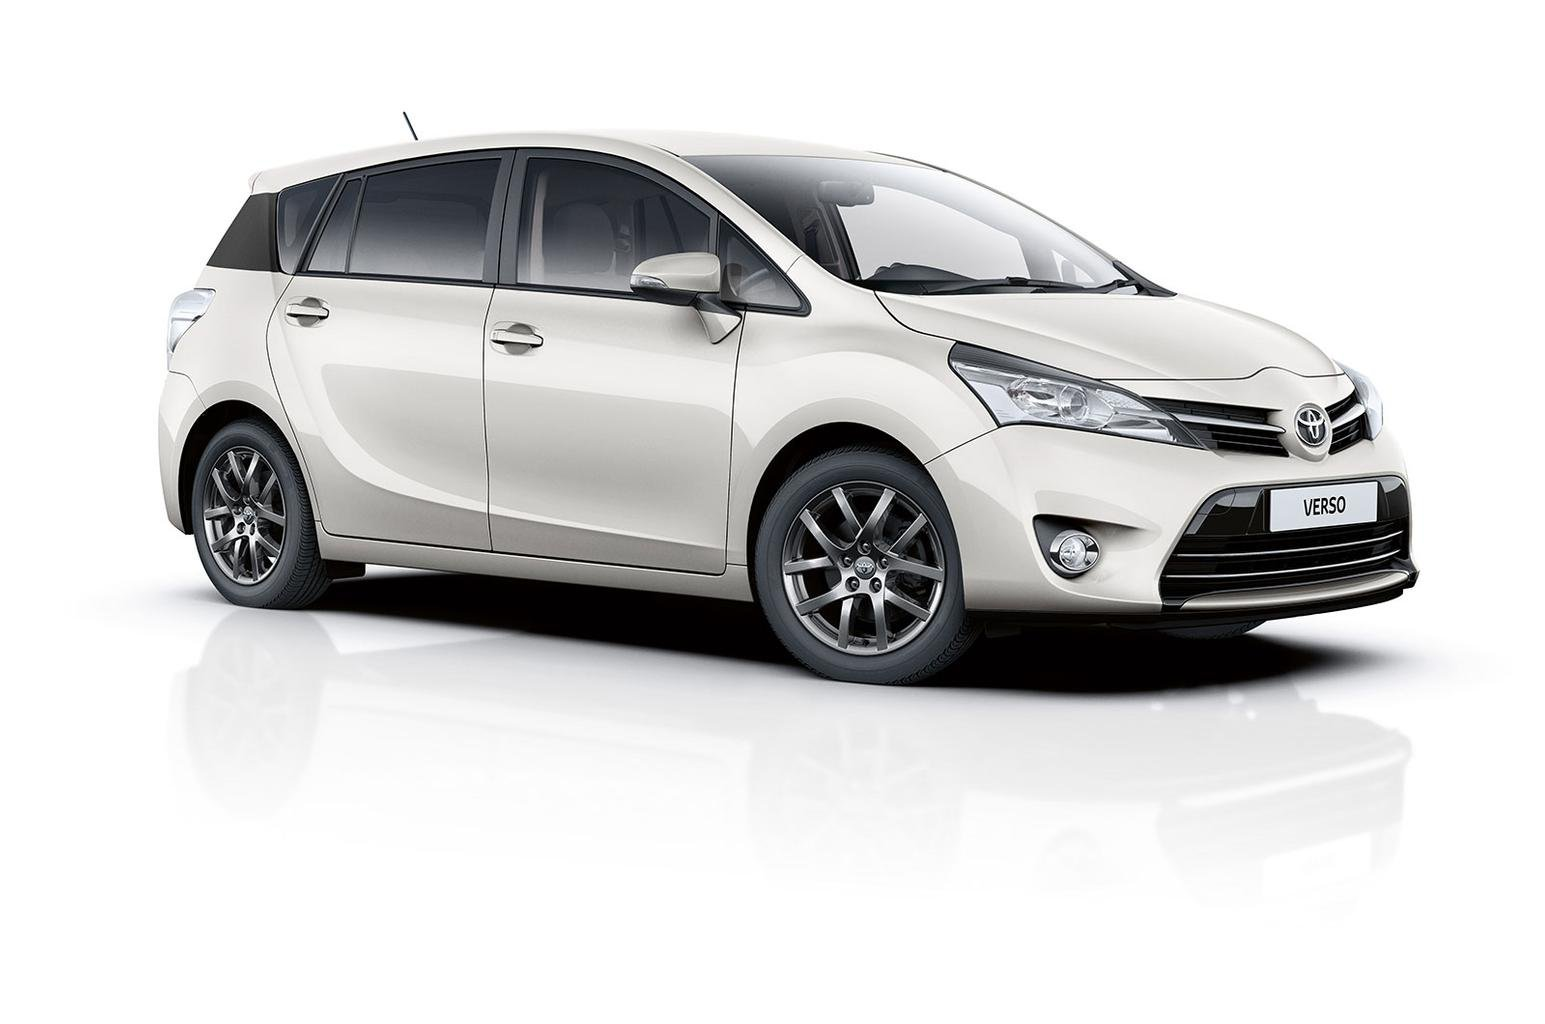 2015 Toyota Verso gets trim and engine upgrades